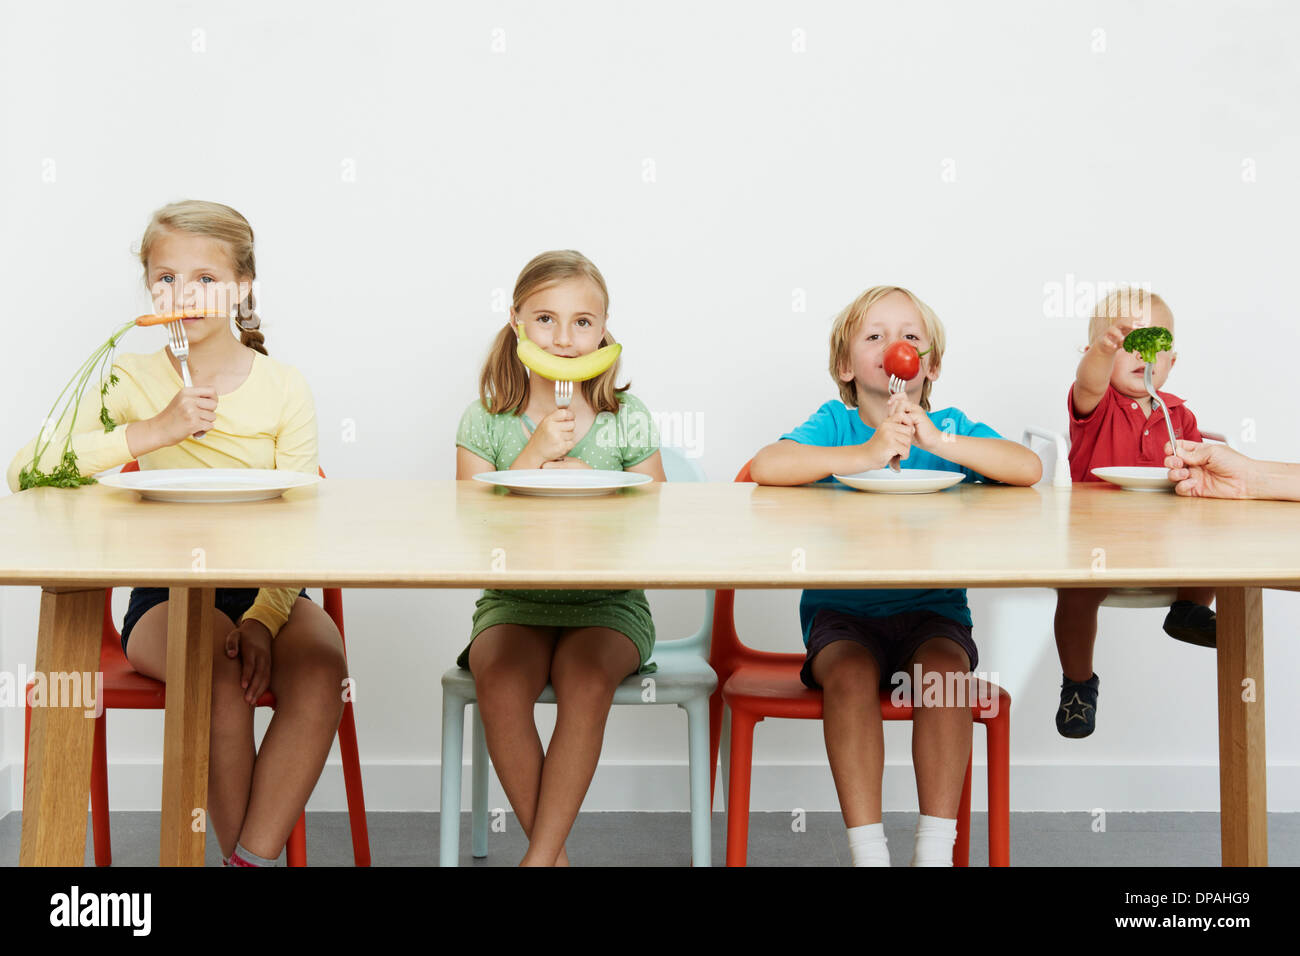 Four children sitting at table with vegetables on forks - Stock Image